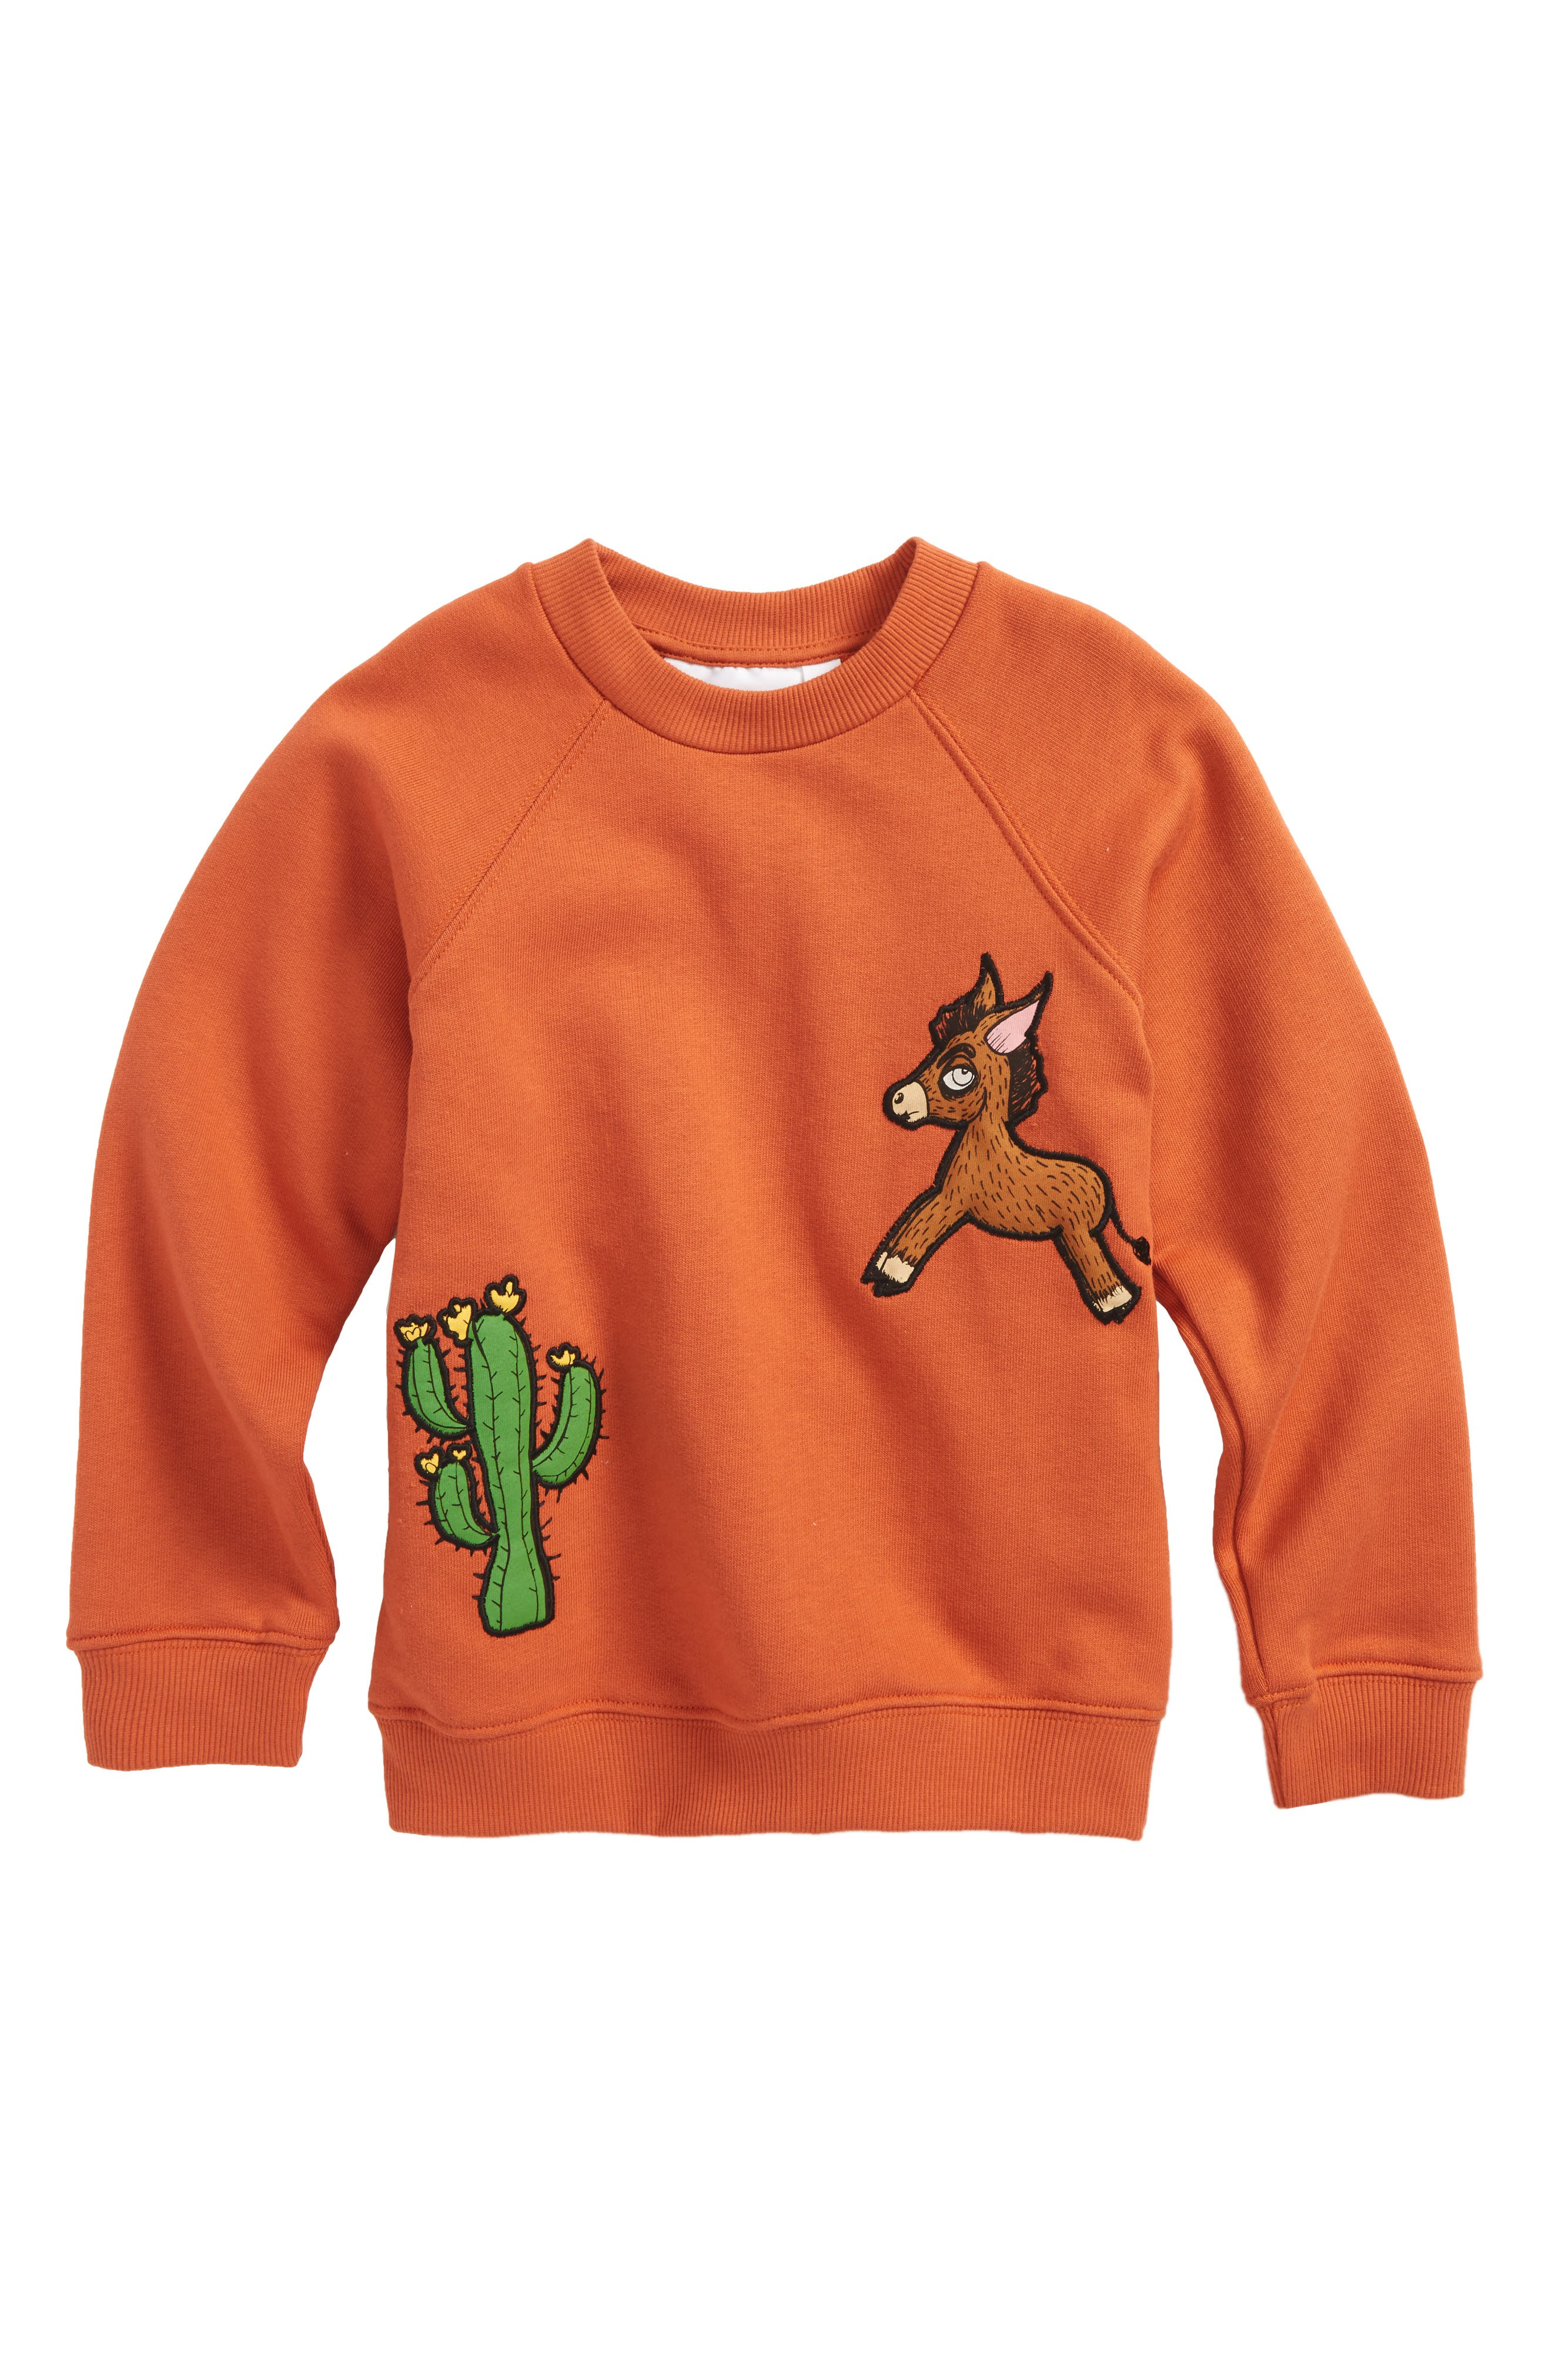 Donkey & Cactus Appliqué Organic Cotton Sweatshirt,                             Main thumbnail 1, color,                             Orange